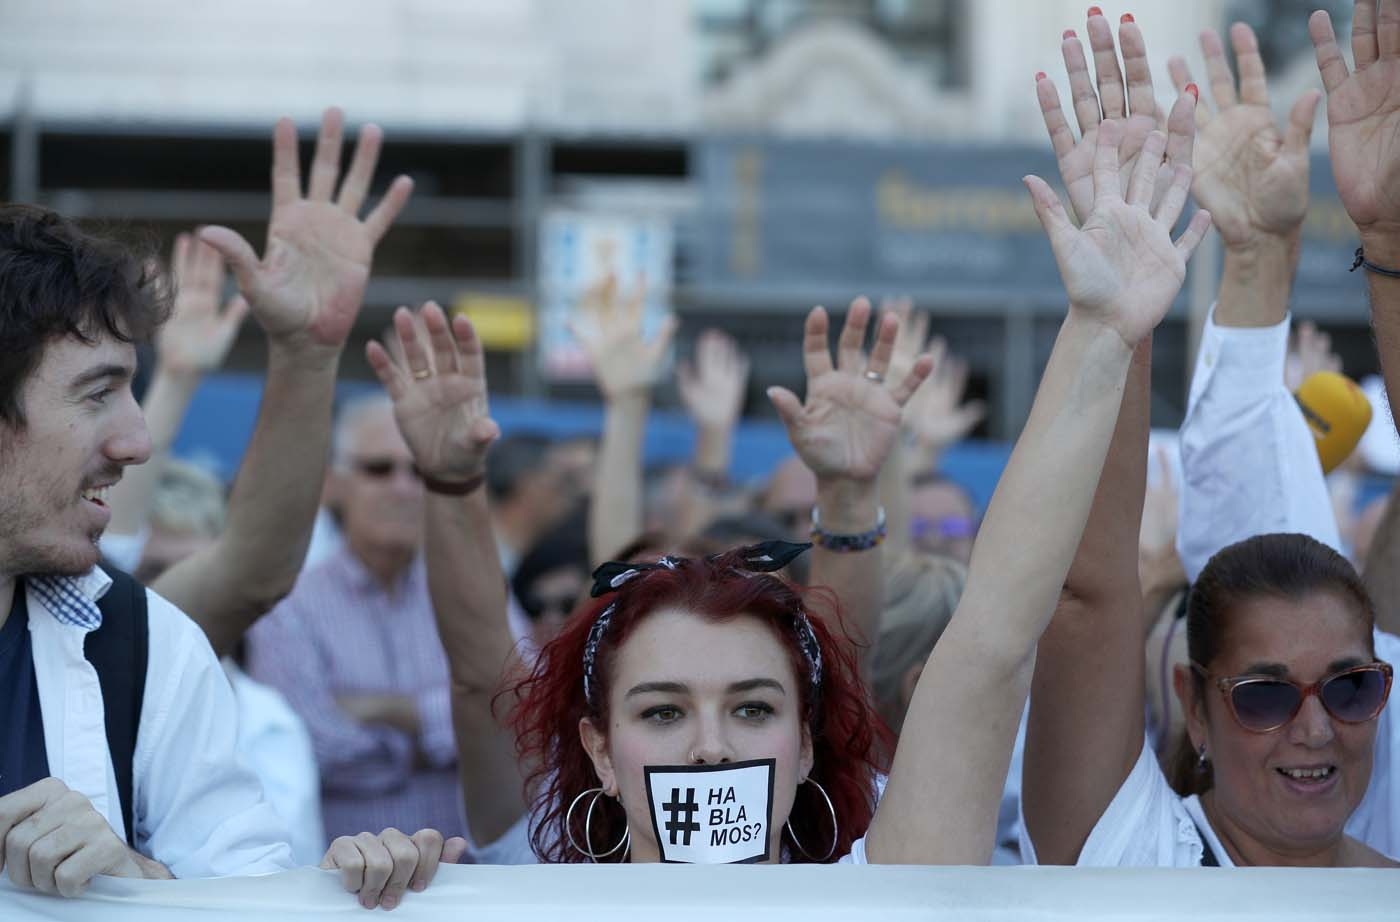 People take part in a demonstration in favour of dialogue to resolve Catalonia´s bid for independence, in Madrid, Spain, October 7, 2017. REUTERS/Sergio Perez